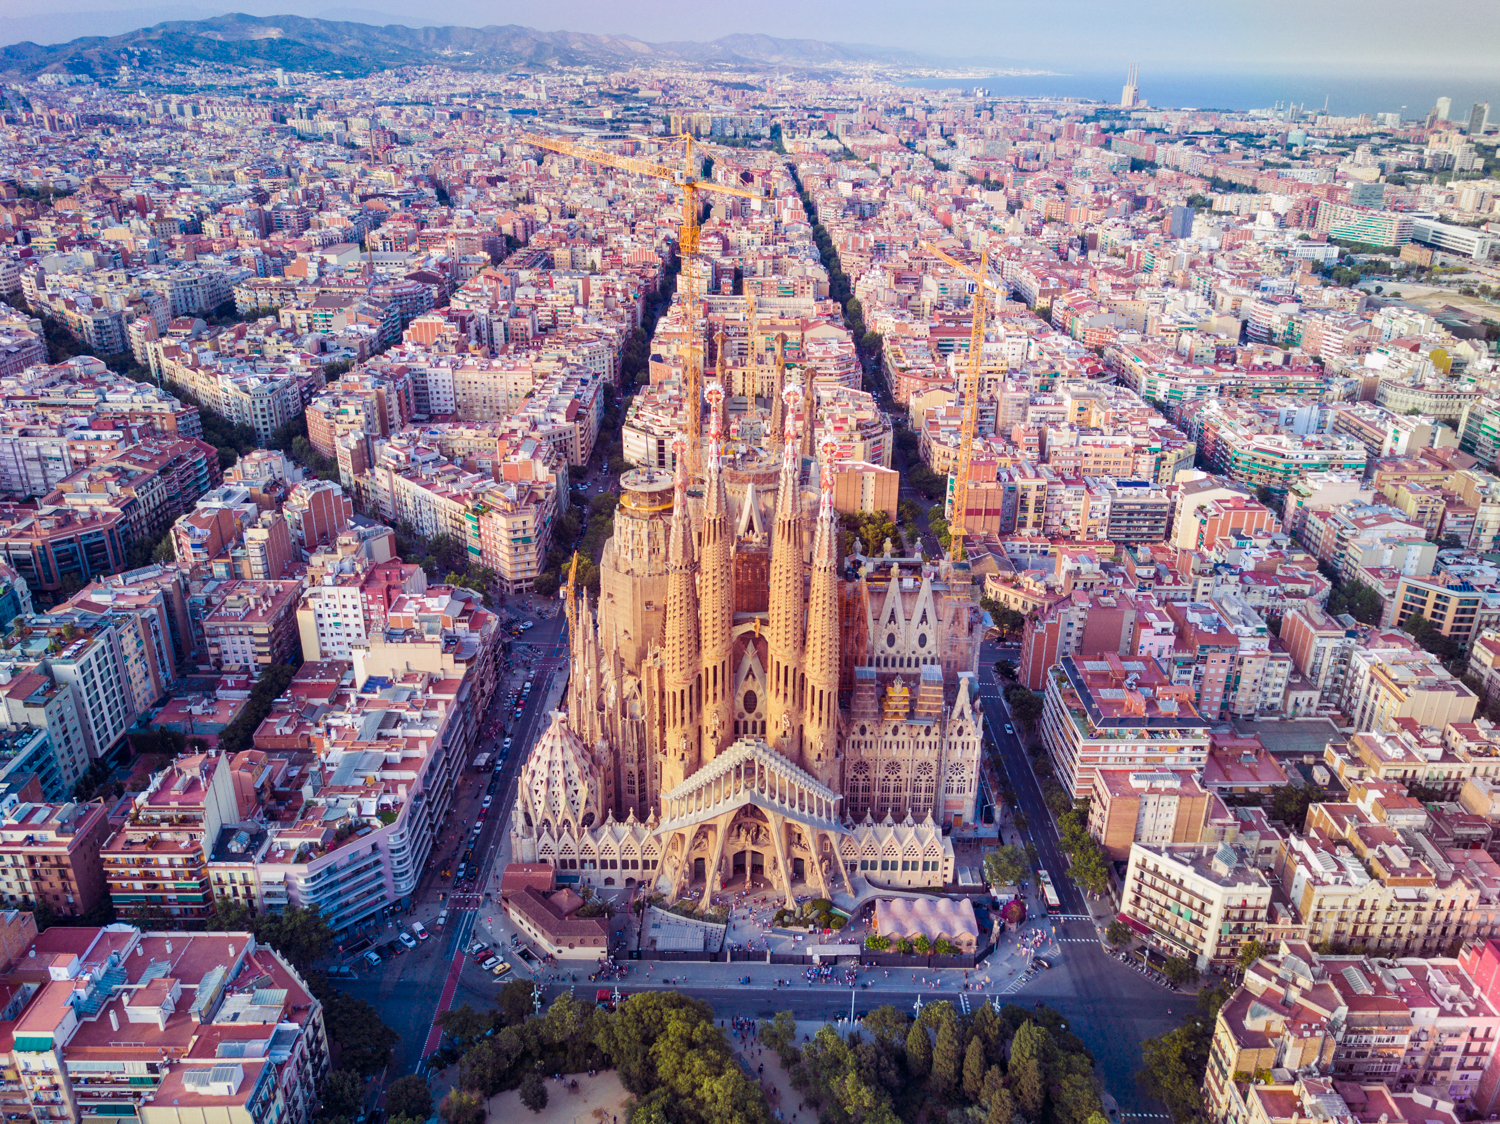 Barcelona, Spain - La Sagrada Familia - NYC Photographer ©Max Reed